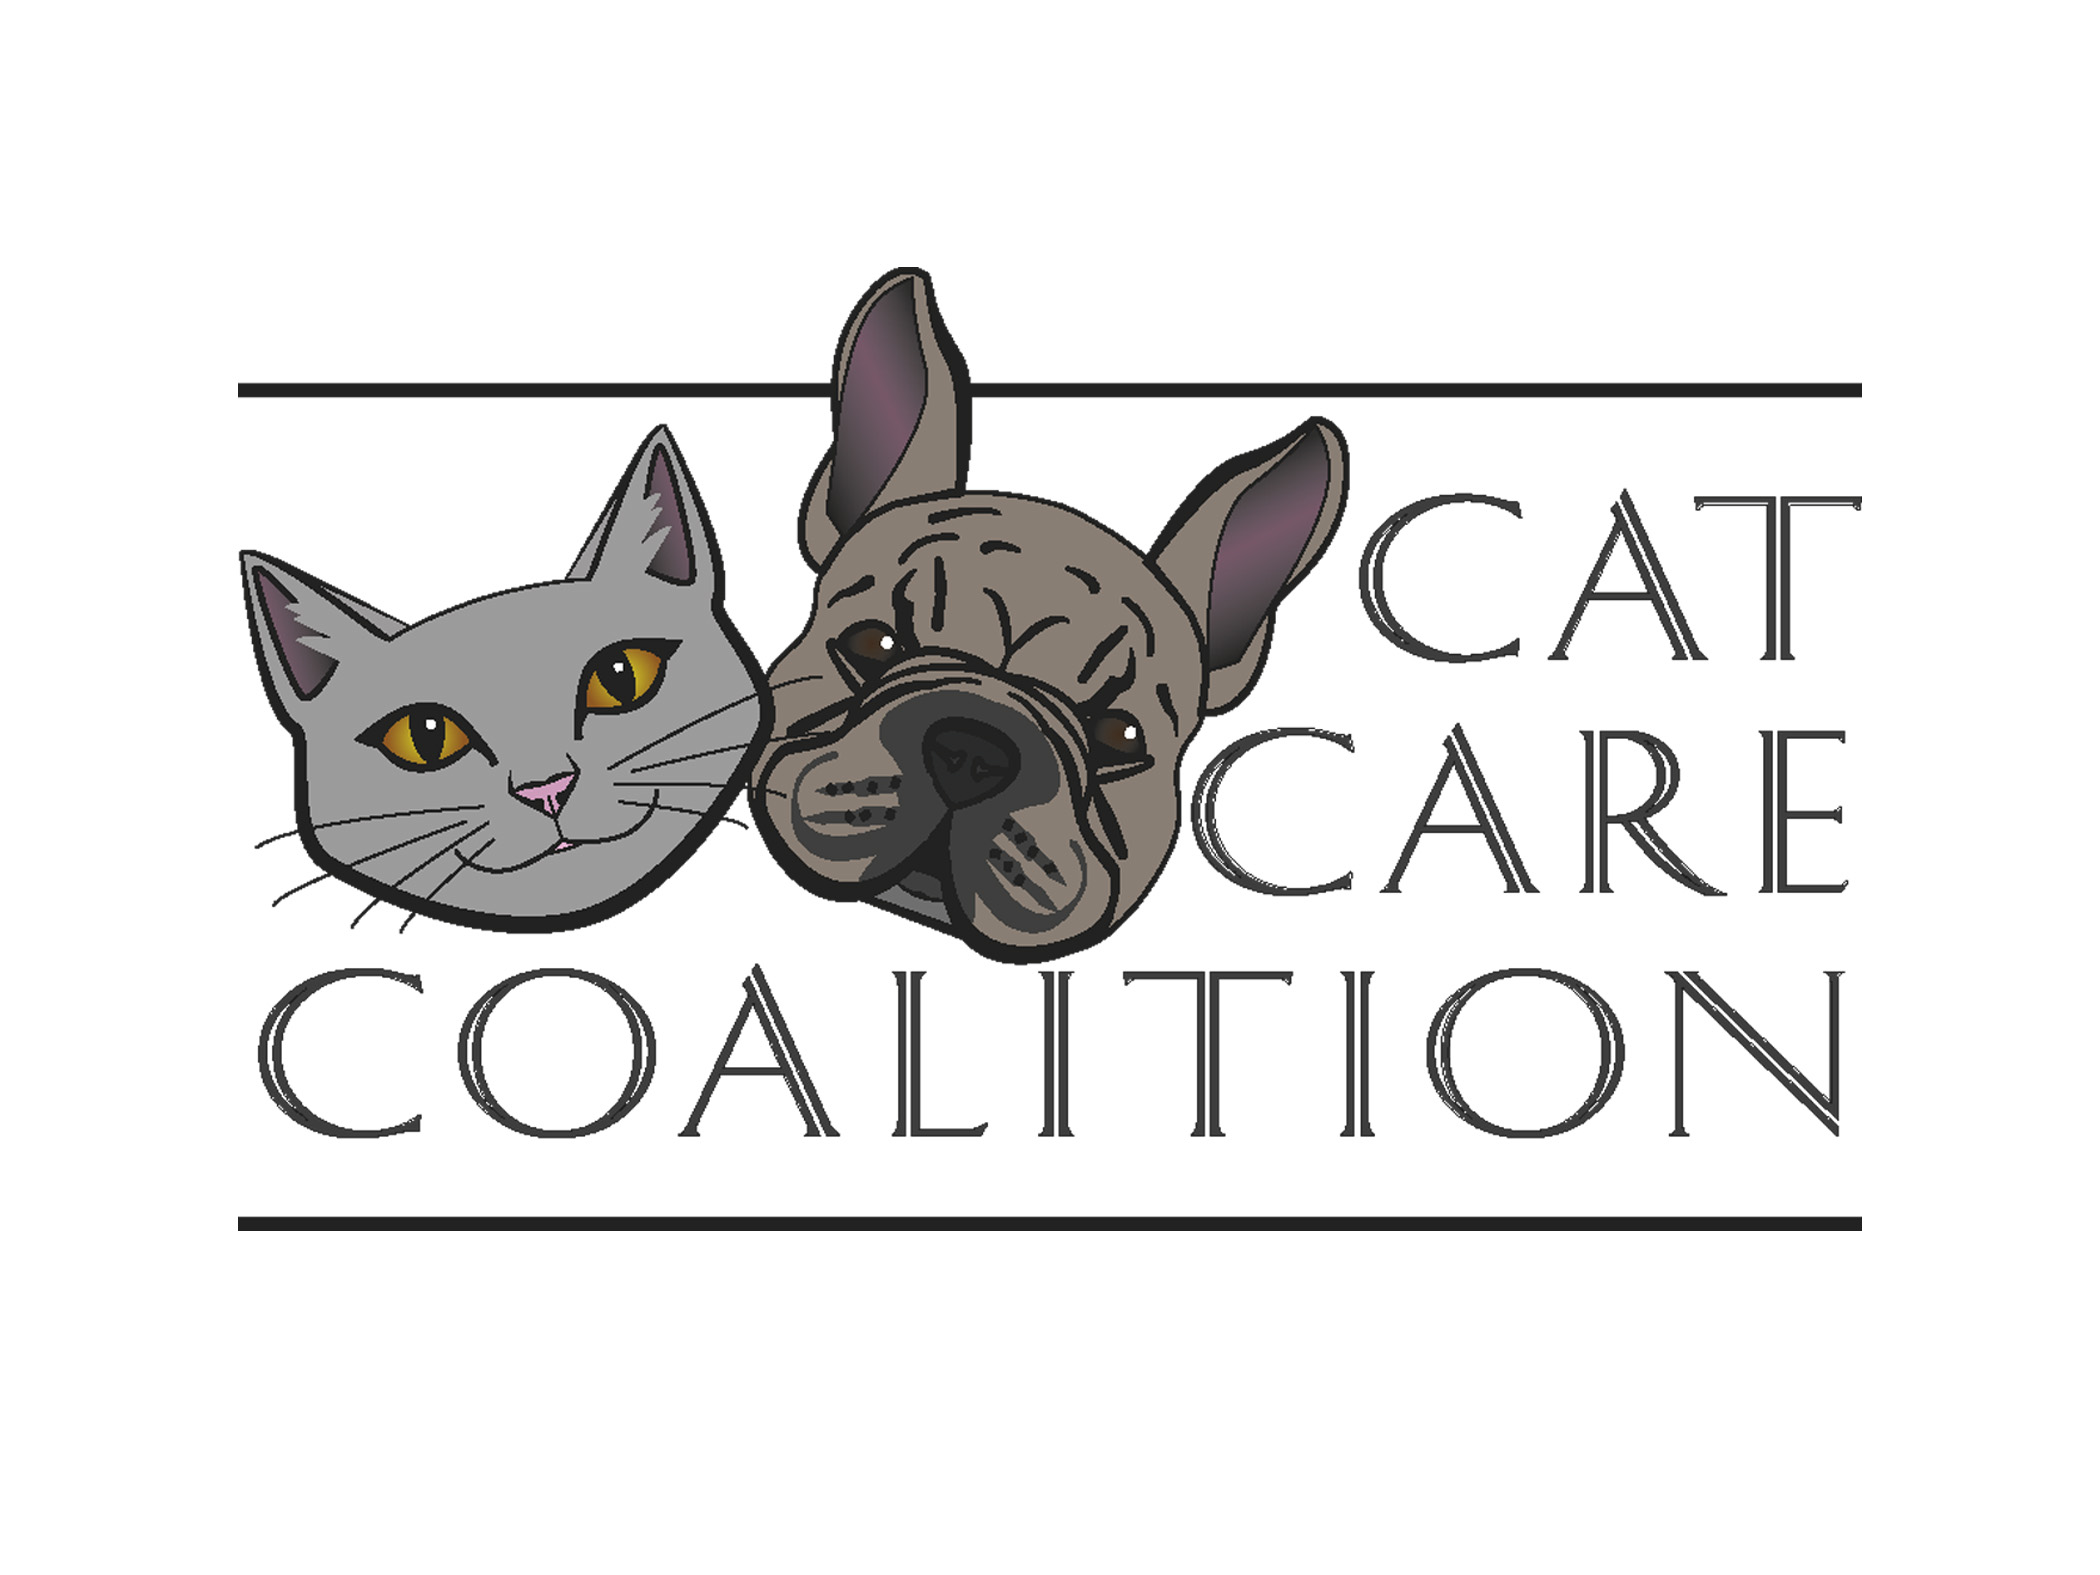 CAT CARE COALITION